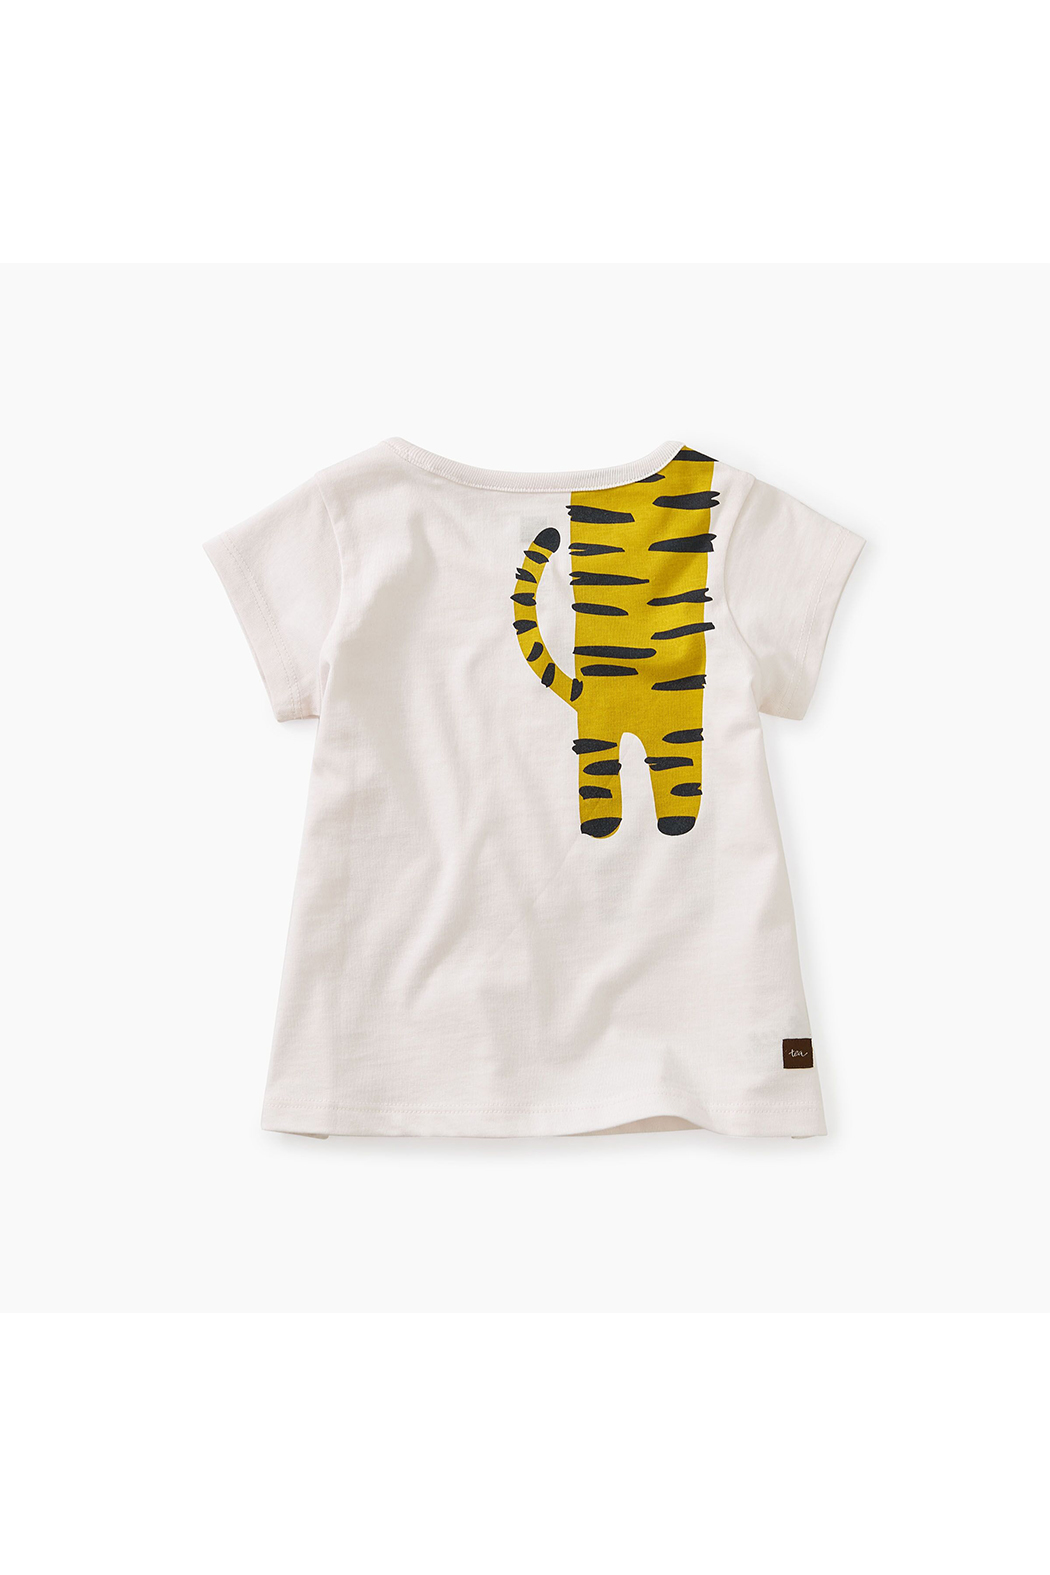 Tea Collection Tiger Turn Baby Graphic Tee - Front Full Image